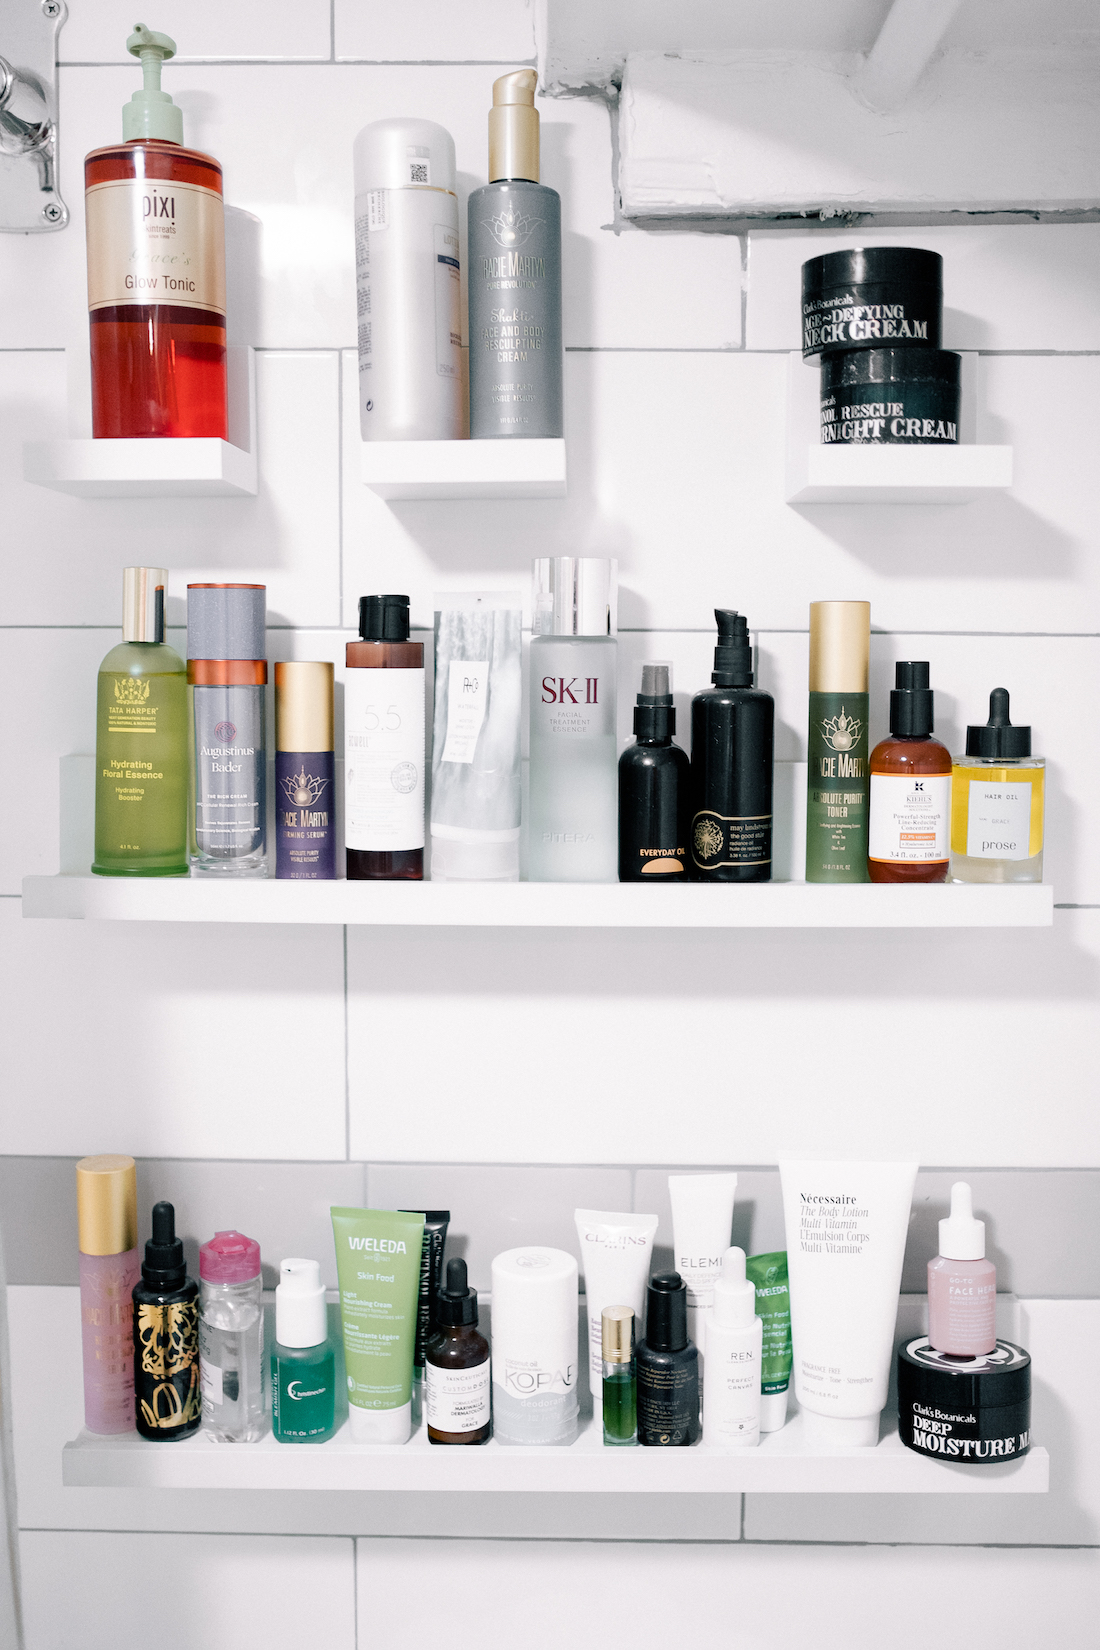 skincare routine products